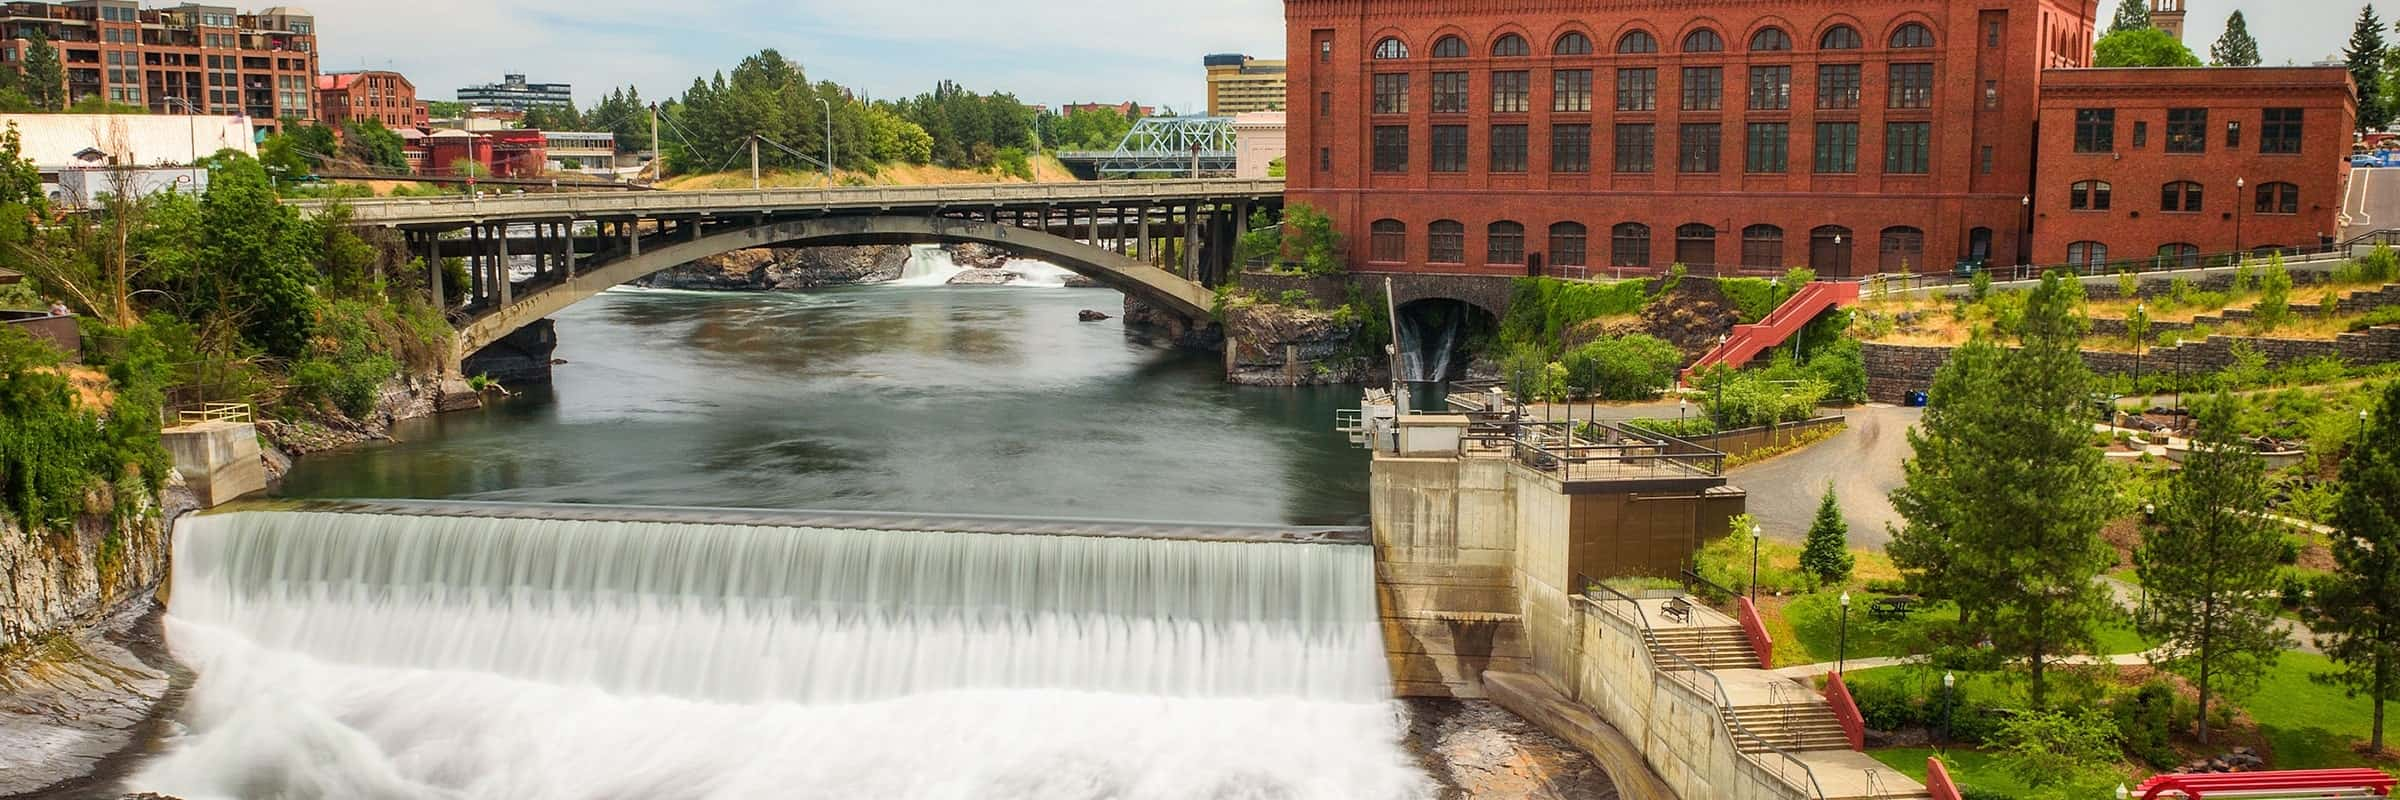 everyday-spokane-home-image-1-1-2400x800_c-min